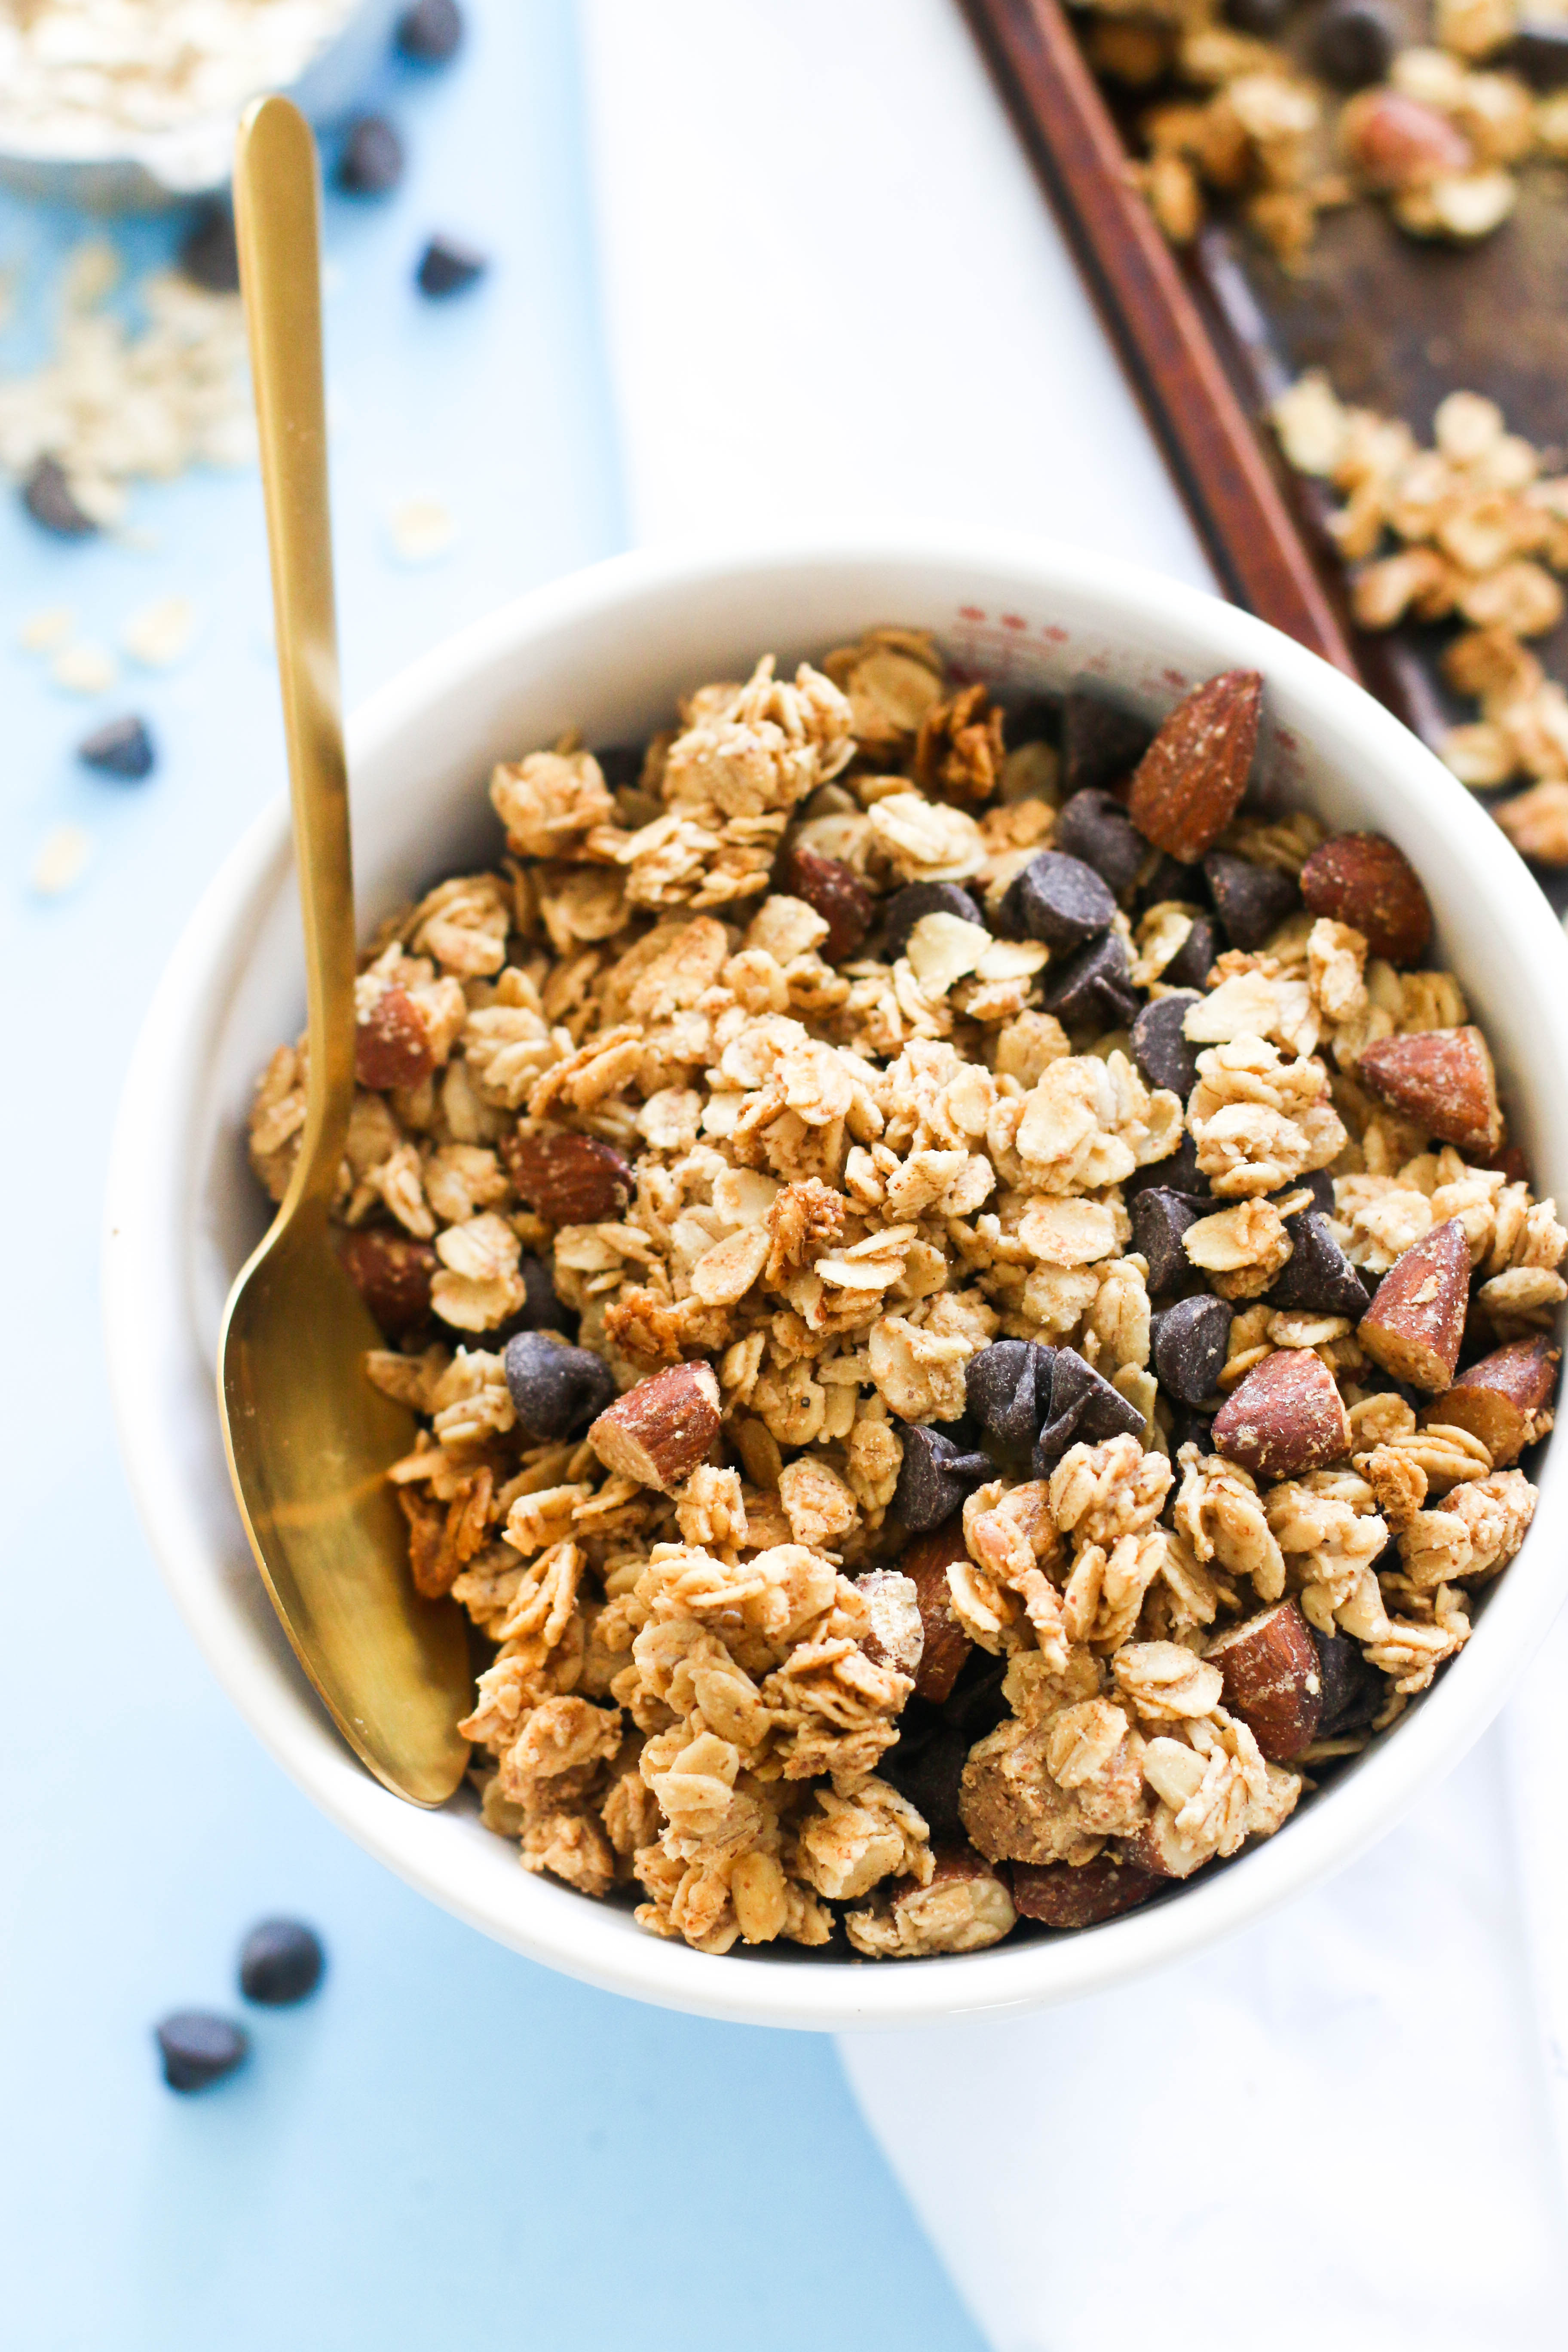 This almond butter chocolate chip granola is vegan, gluten free, full of flavor, and the perfect breakfast! Pair it with some almond milk and fruit for an easy meal that leaves you satisfied, or you can top it on yogurt, oatmeal, smoothies, or potatoes!